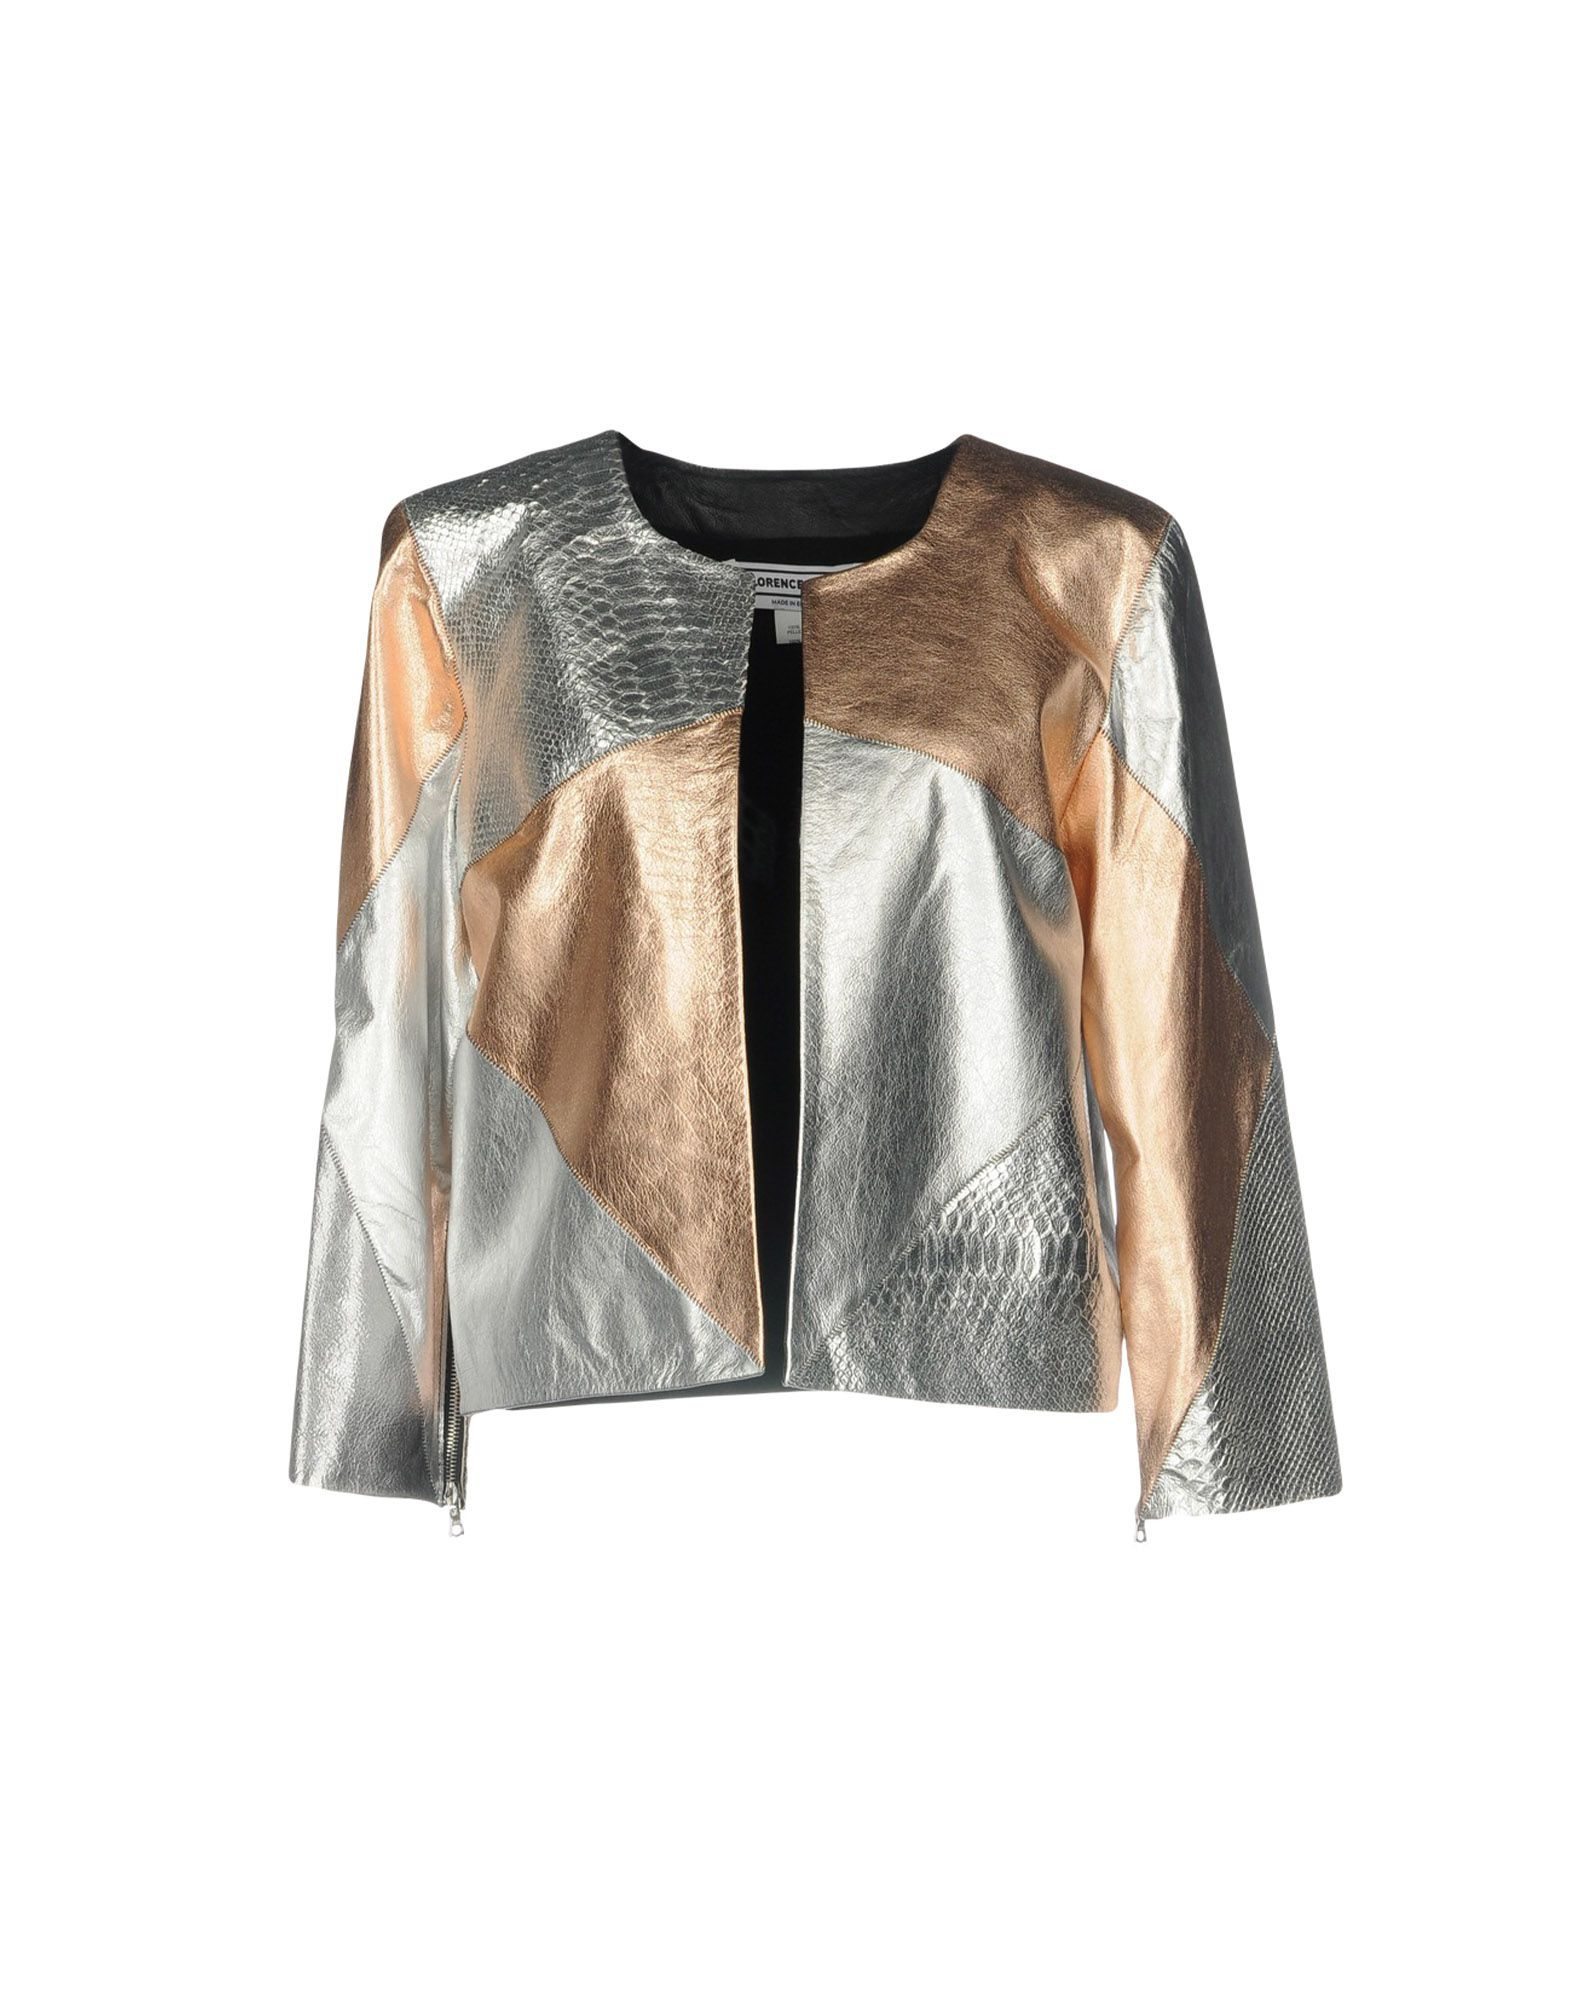 FLORENCE BRIDGE Leather Jacket in Copper